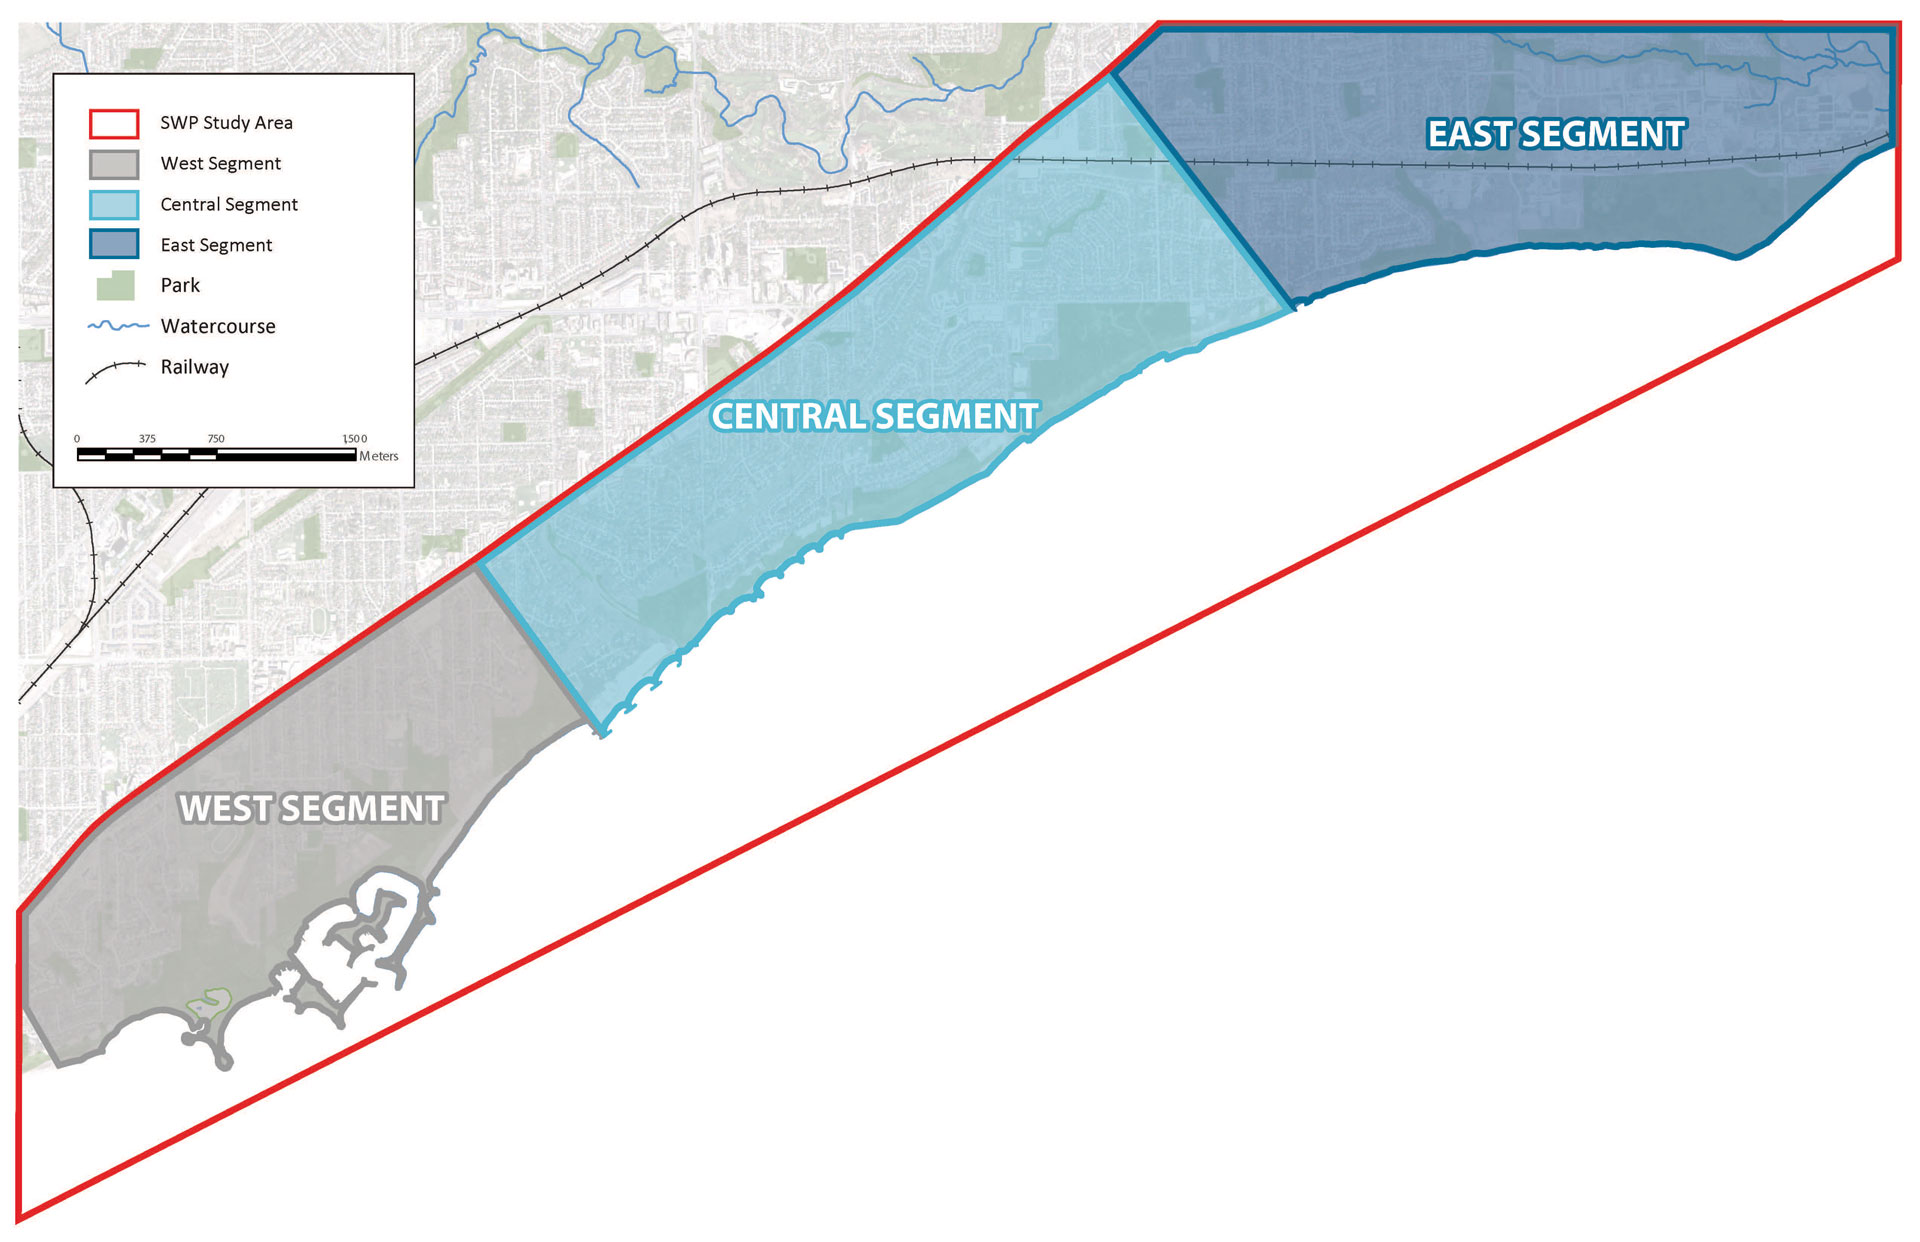 All segments of the Scarborough Waterfront Project